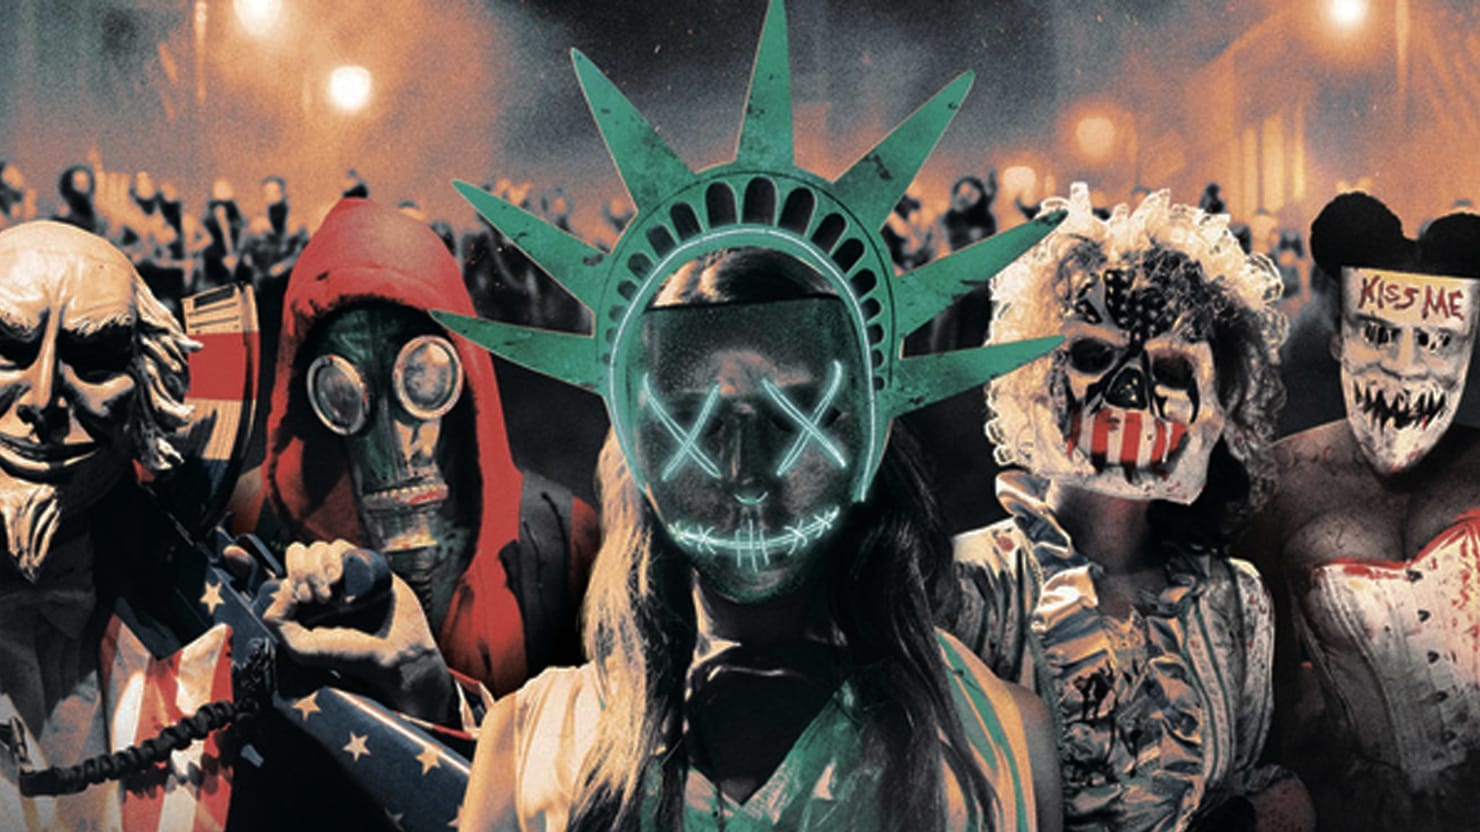 The Purge Election Year Poster Wallpapers: 'The Purge: Election Year' Is With Hillary Clinton